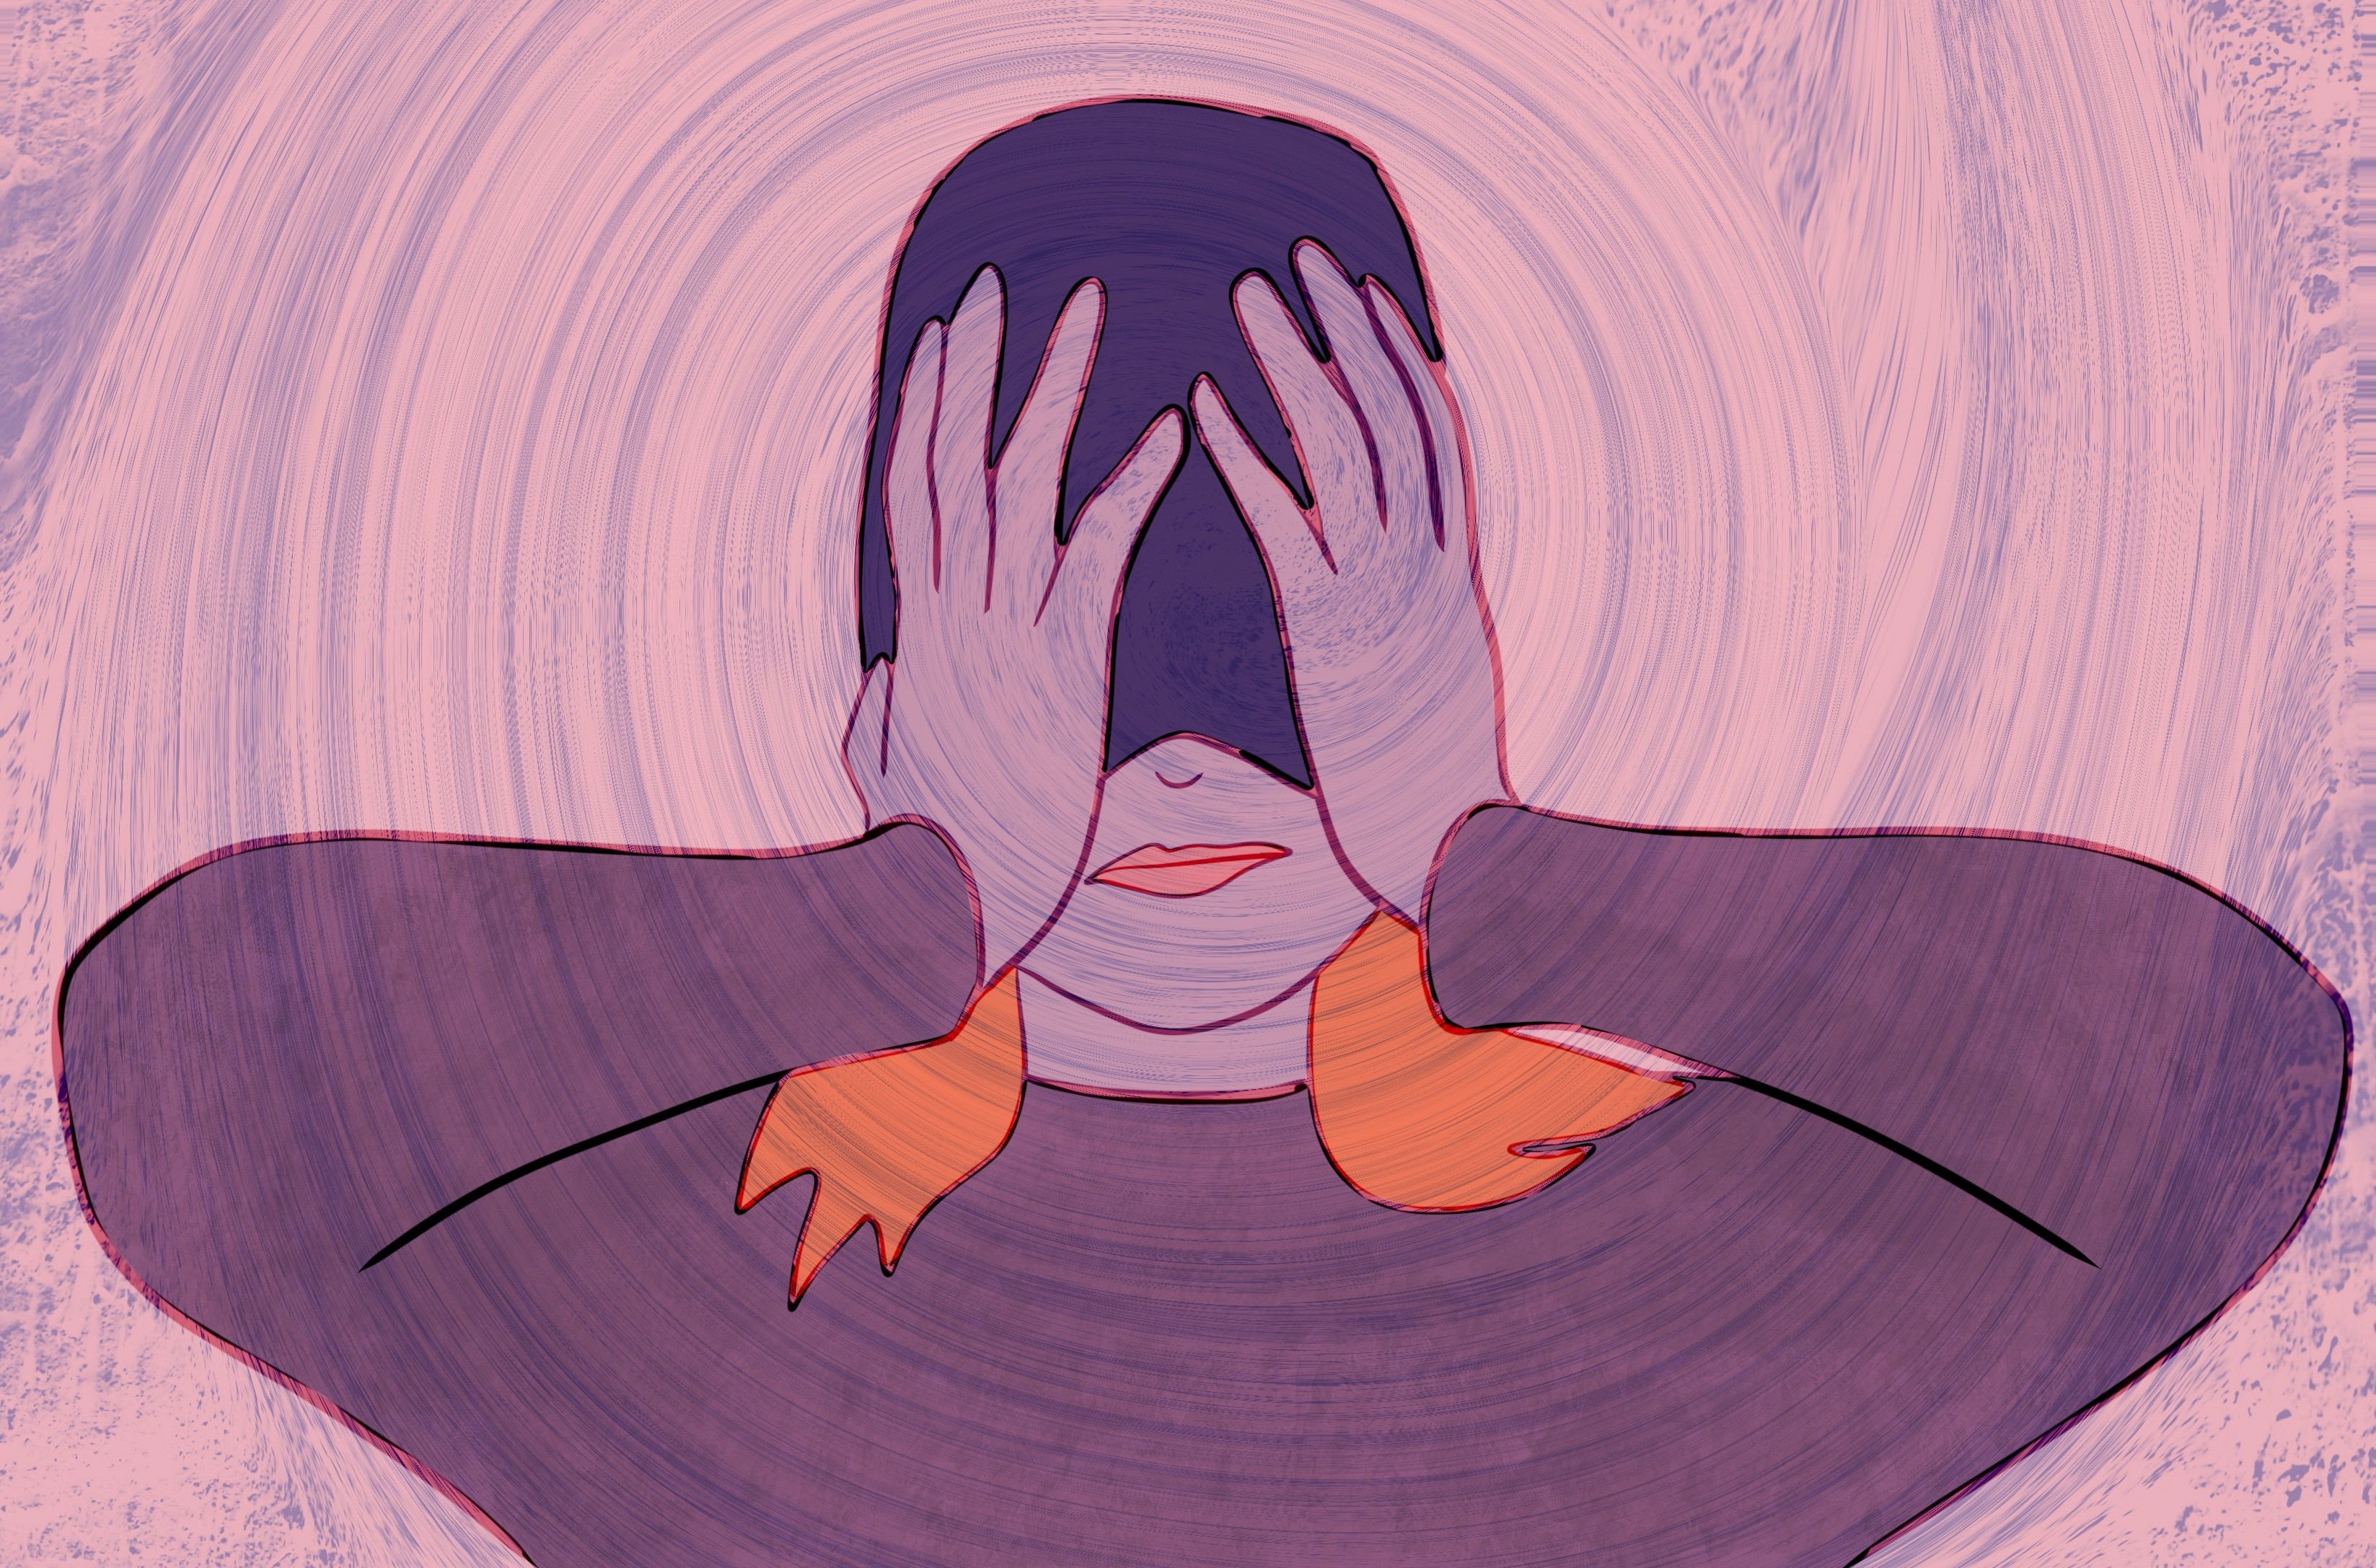 Drawing of a woman with her beanie pulled over her face and her hands over her eyes on a swirling background